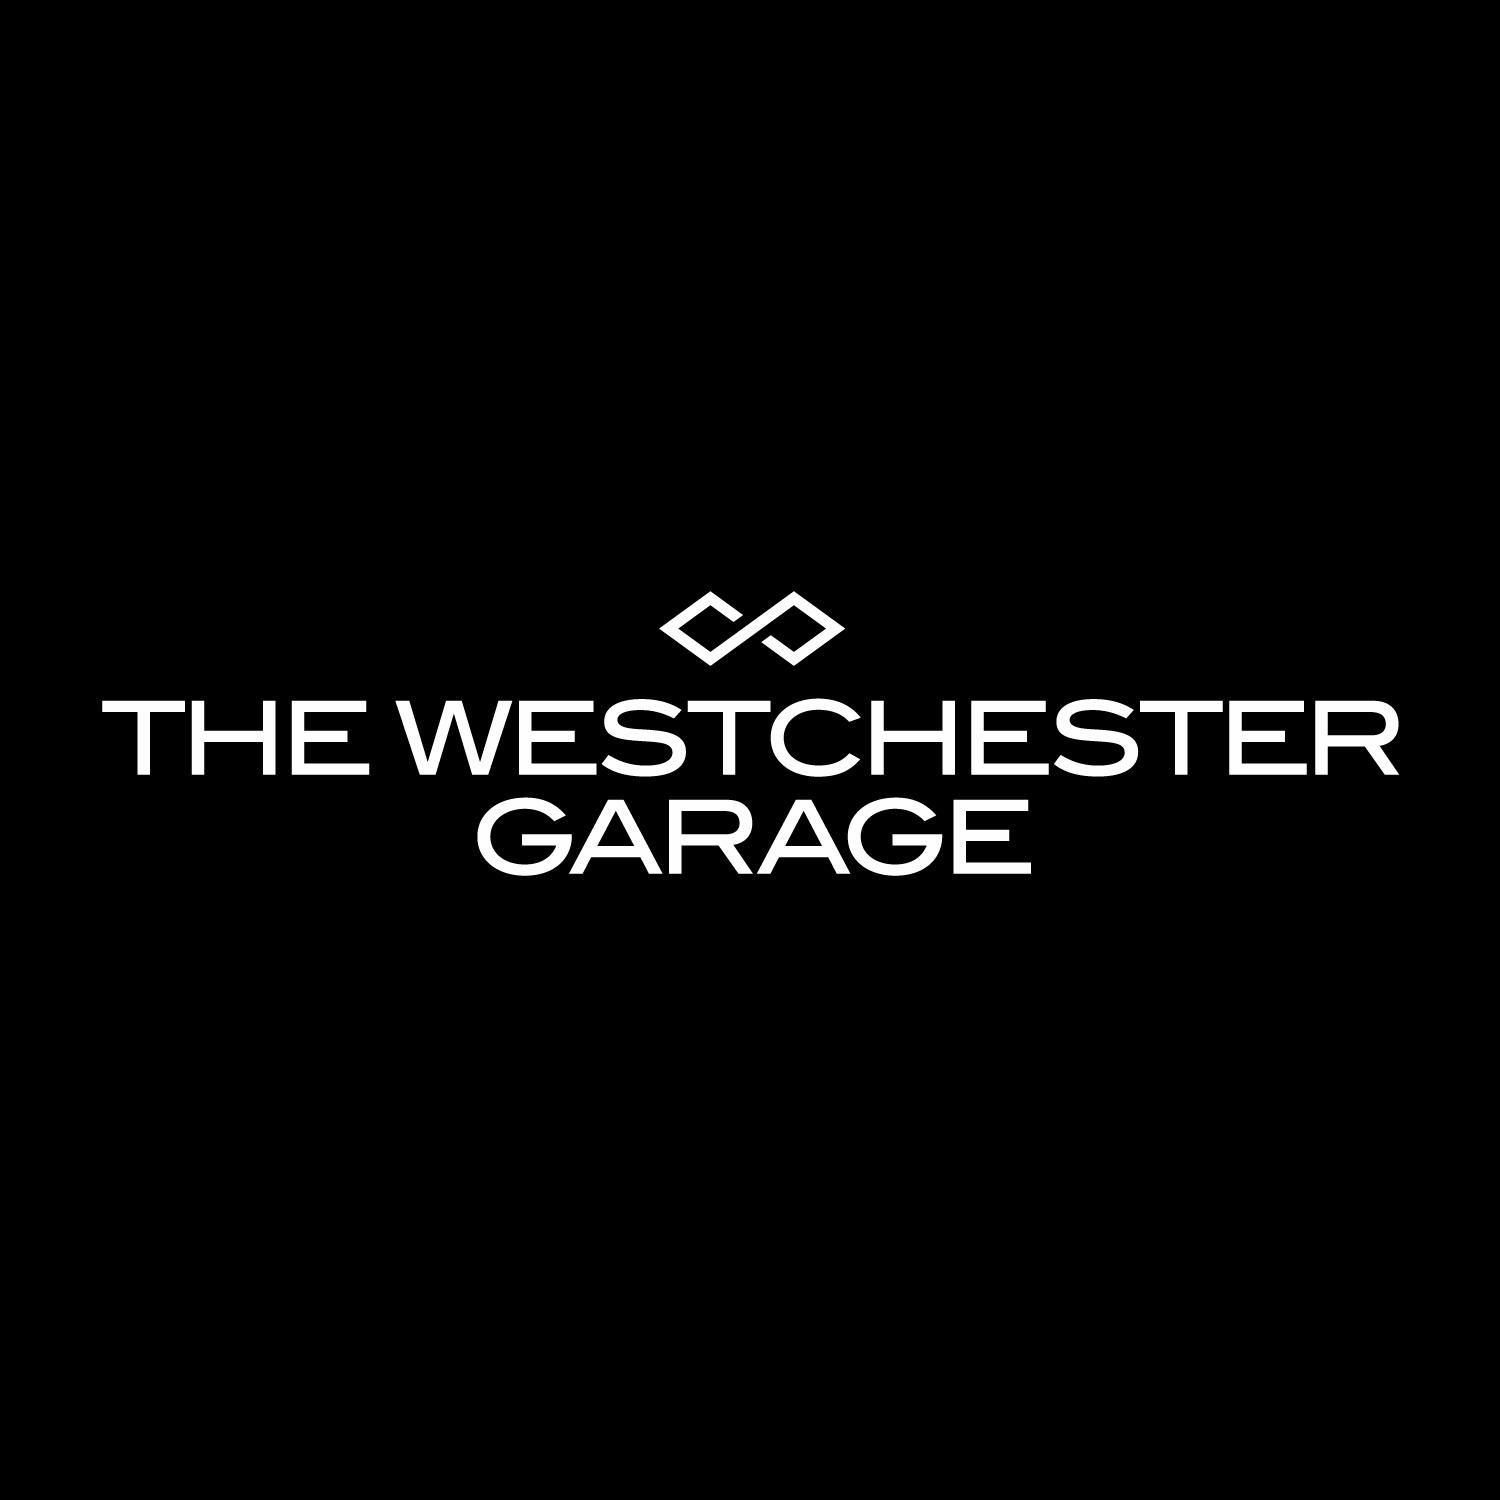 The Westchester Garage